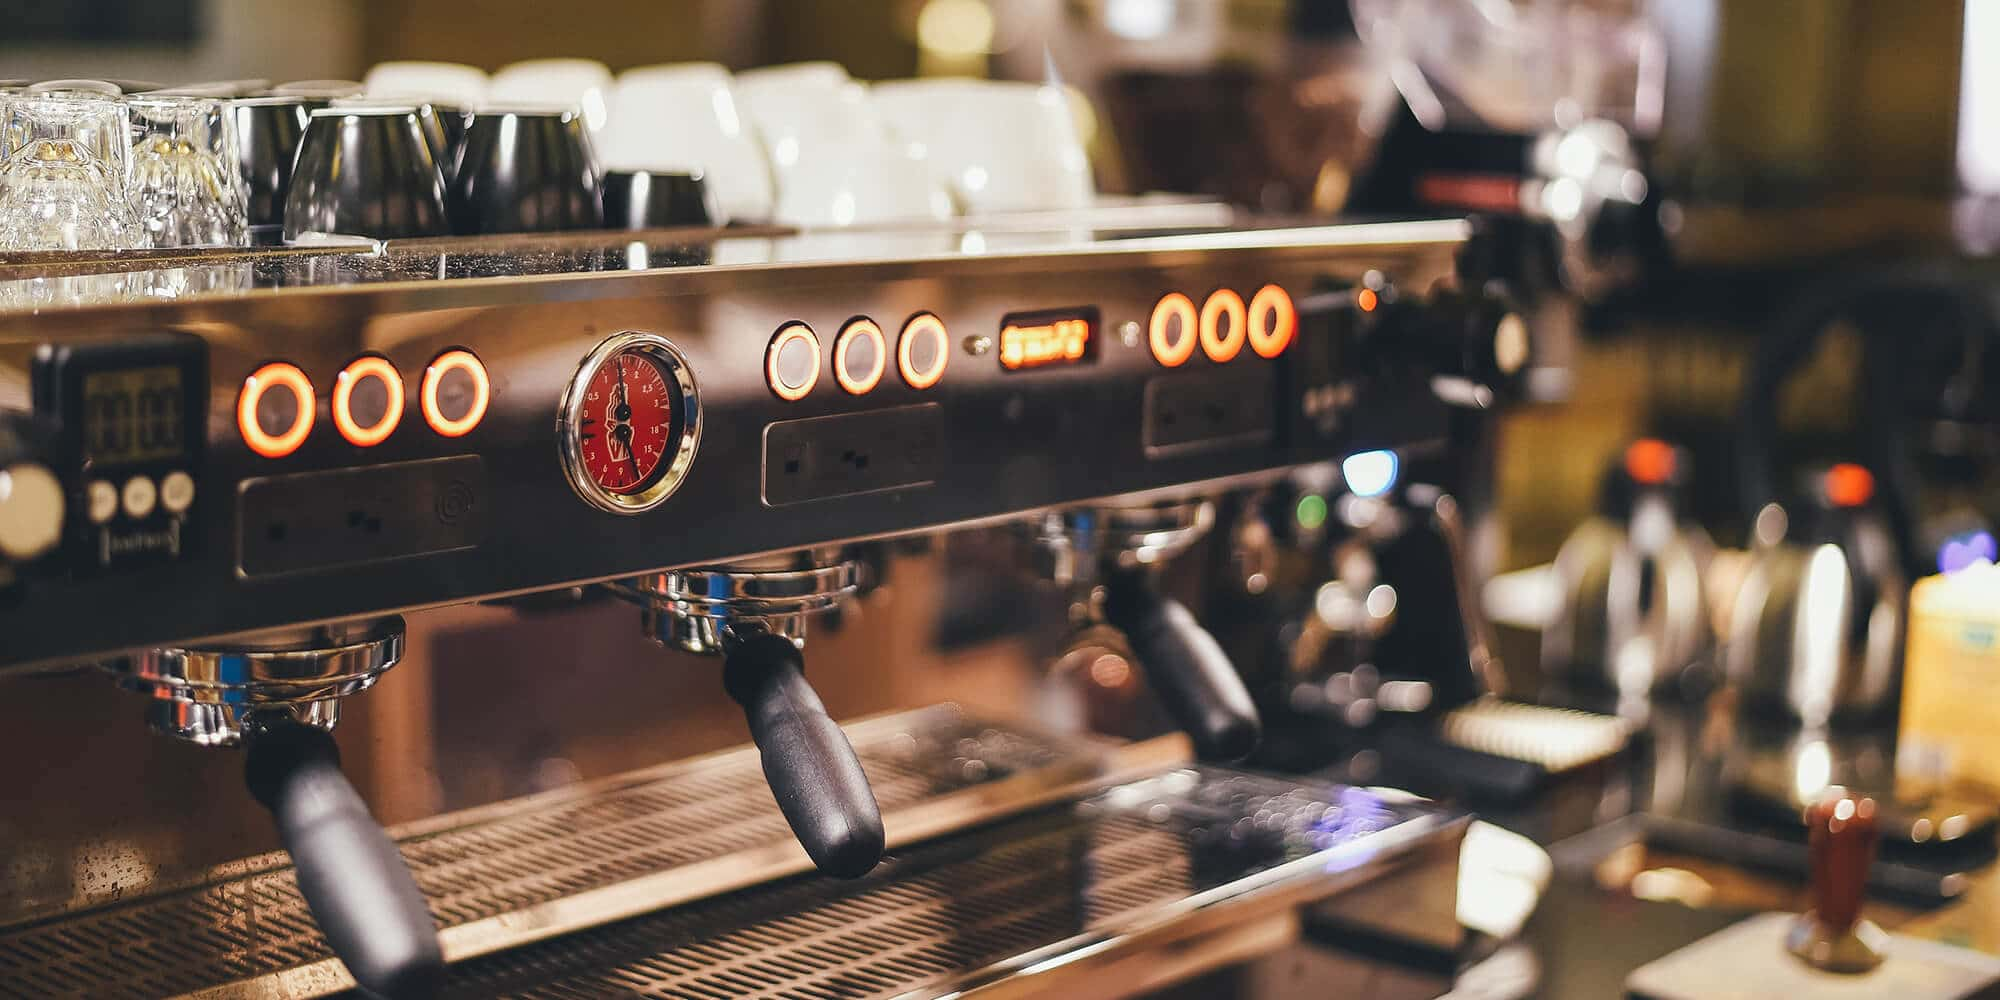 Affordable Commercial Espresso Machines